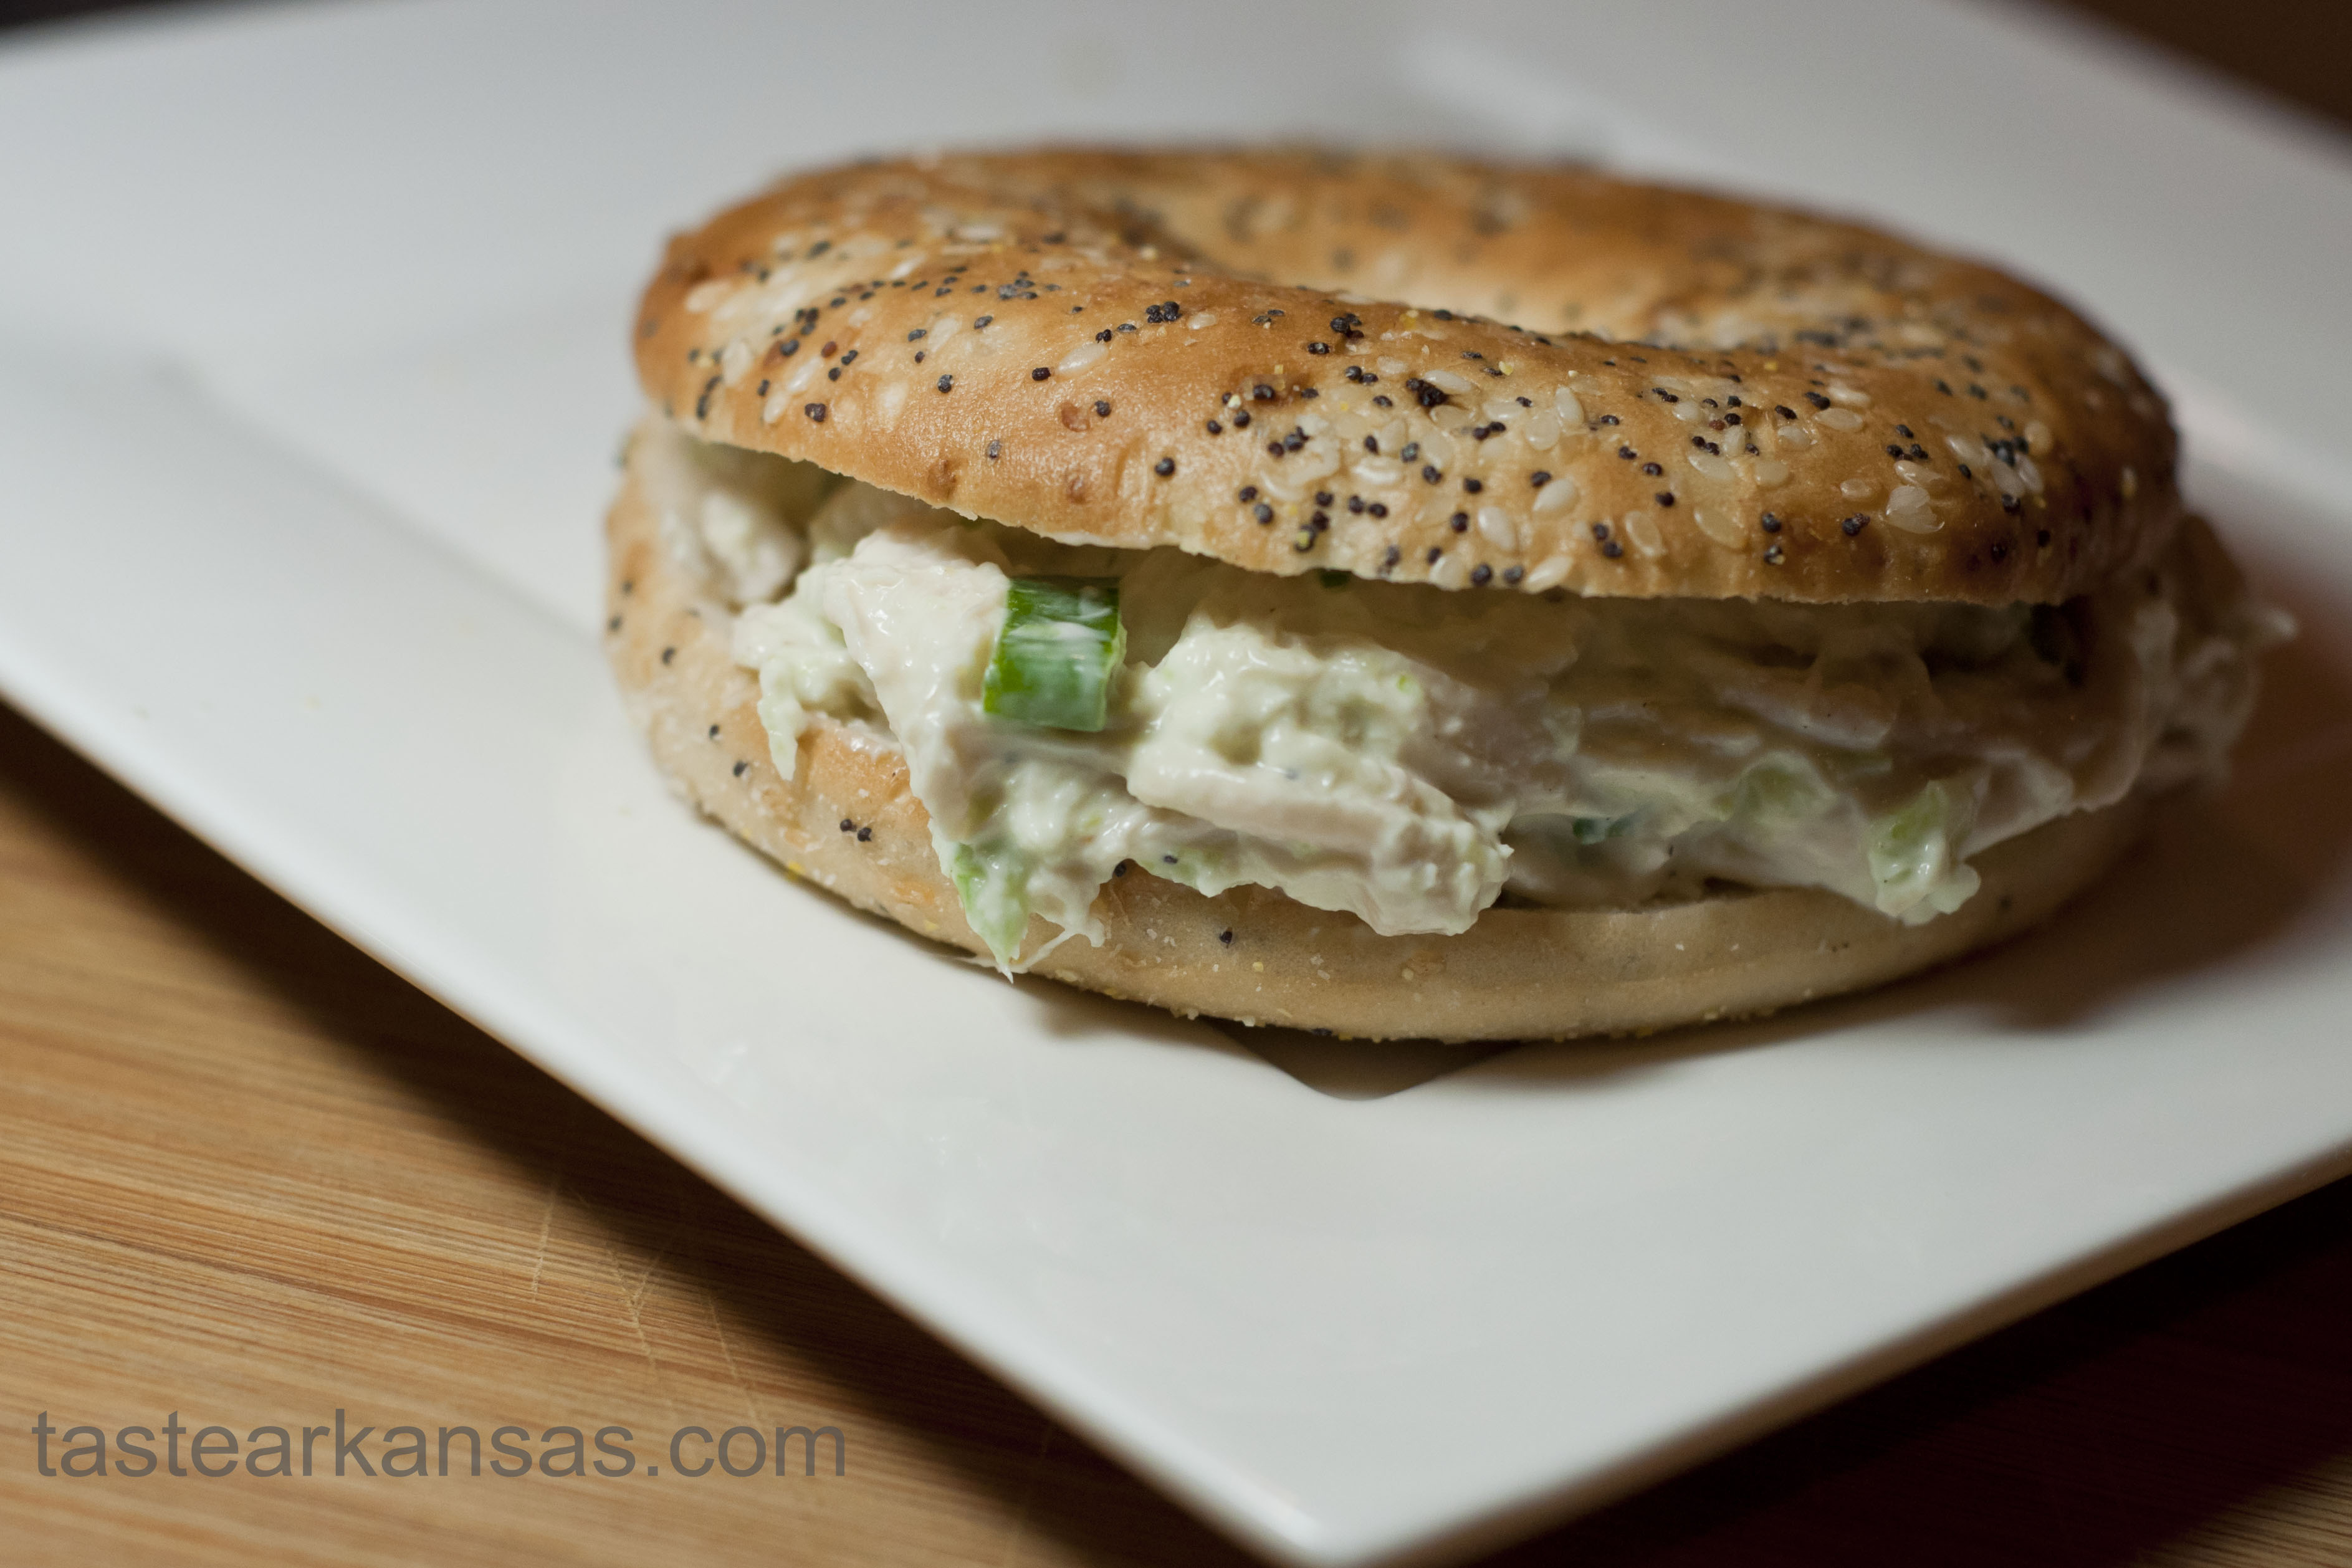 this image is of a creamy chicken salad sandwich on a bagel thin